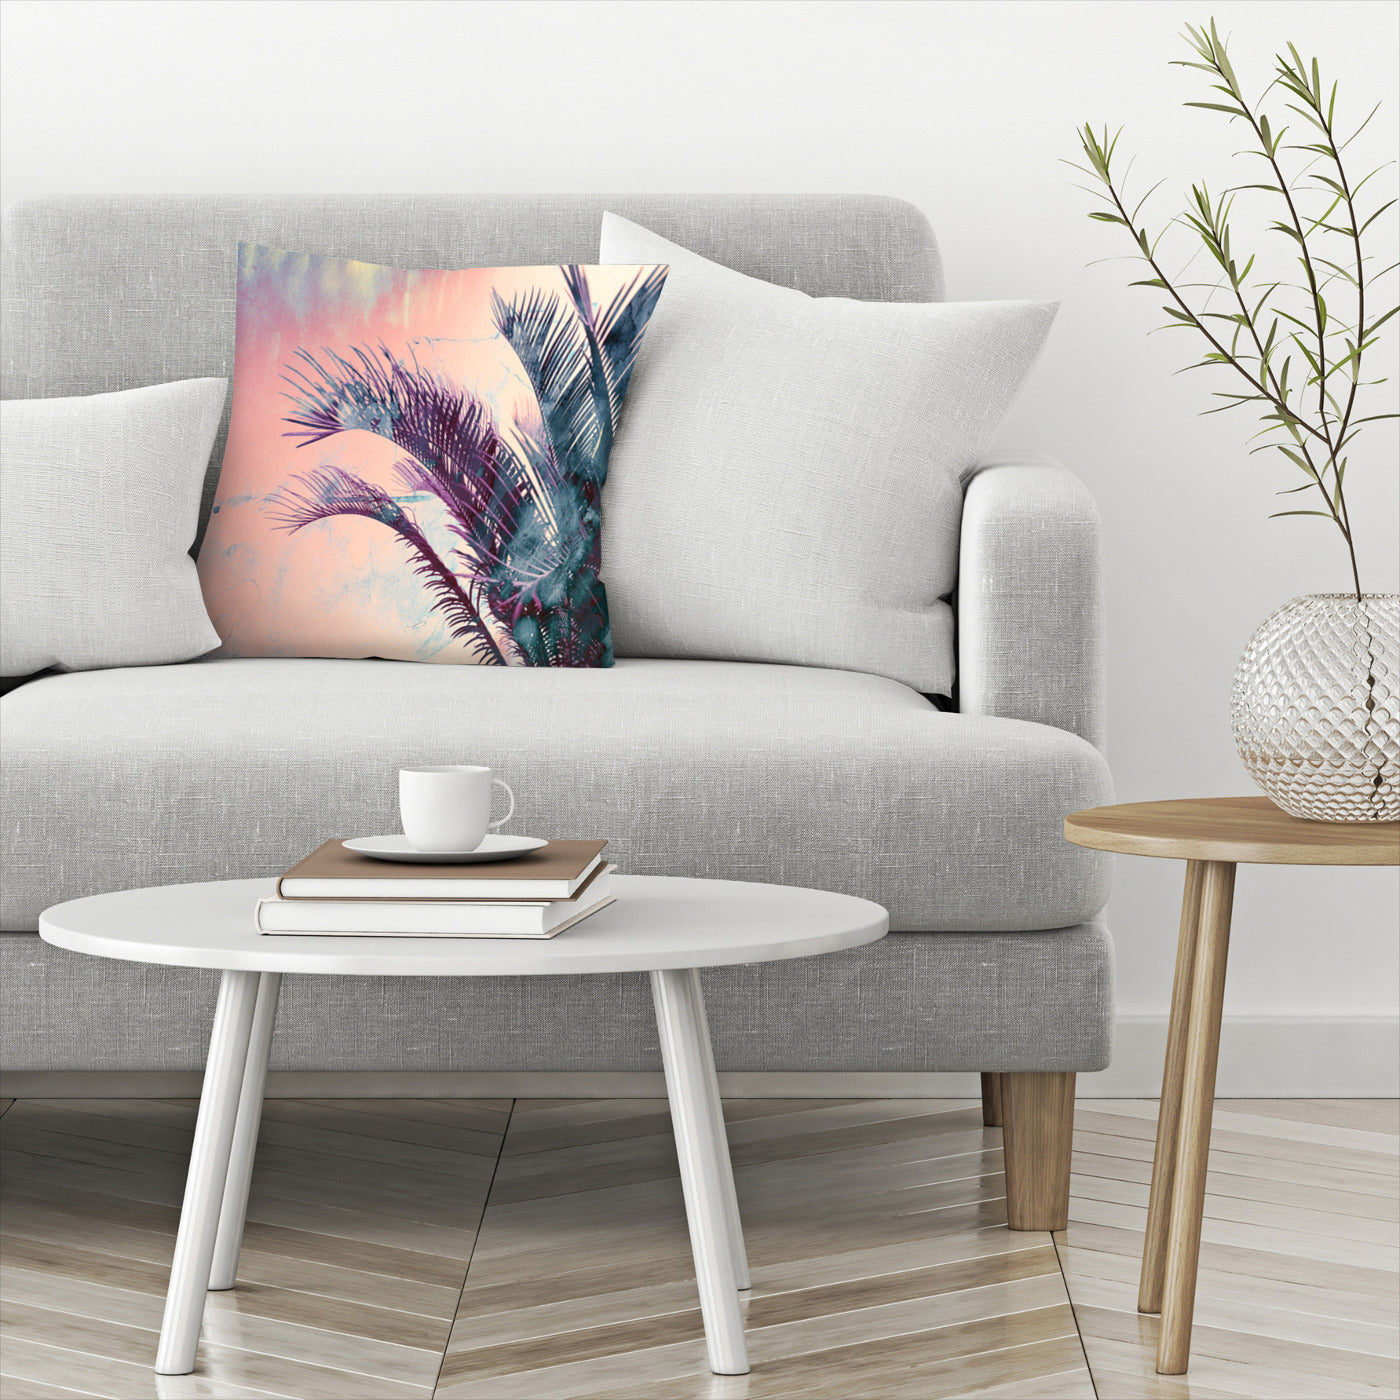 Pastel Palms by Emanuela Carratoni Decorative Pillow